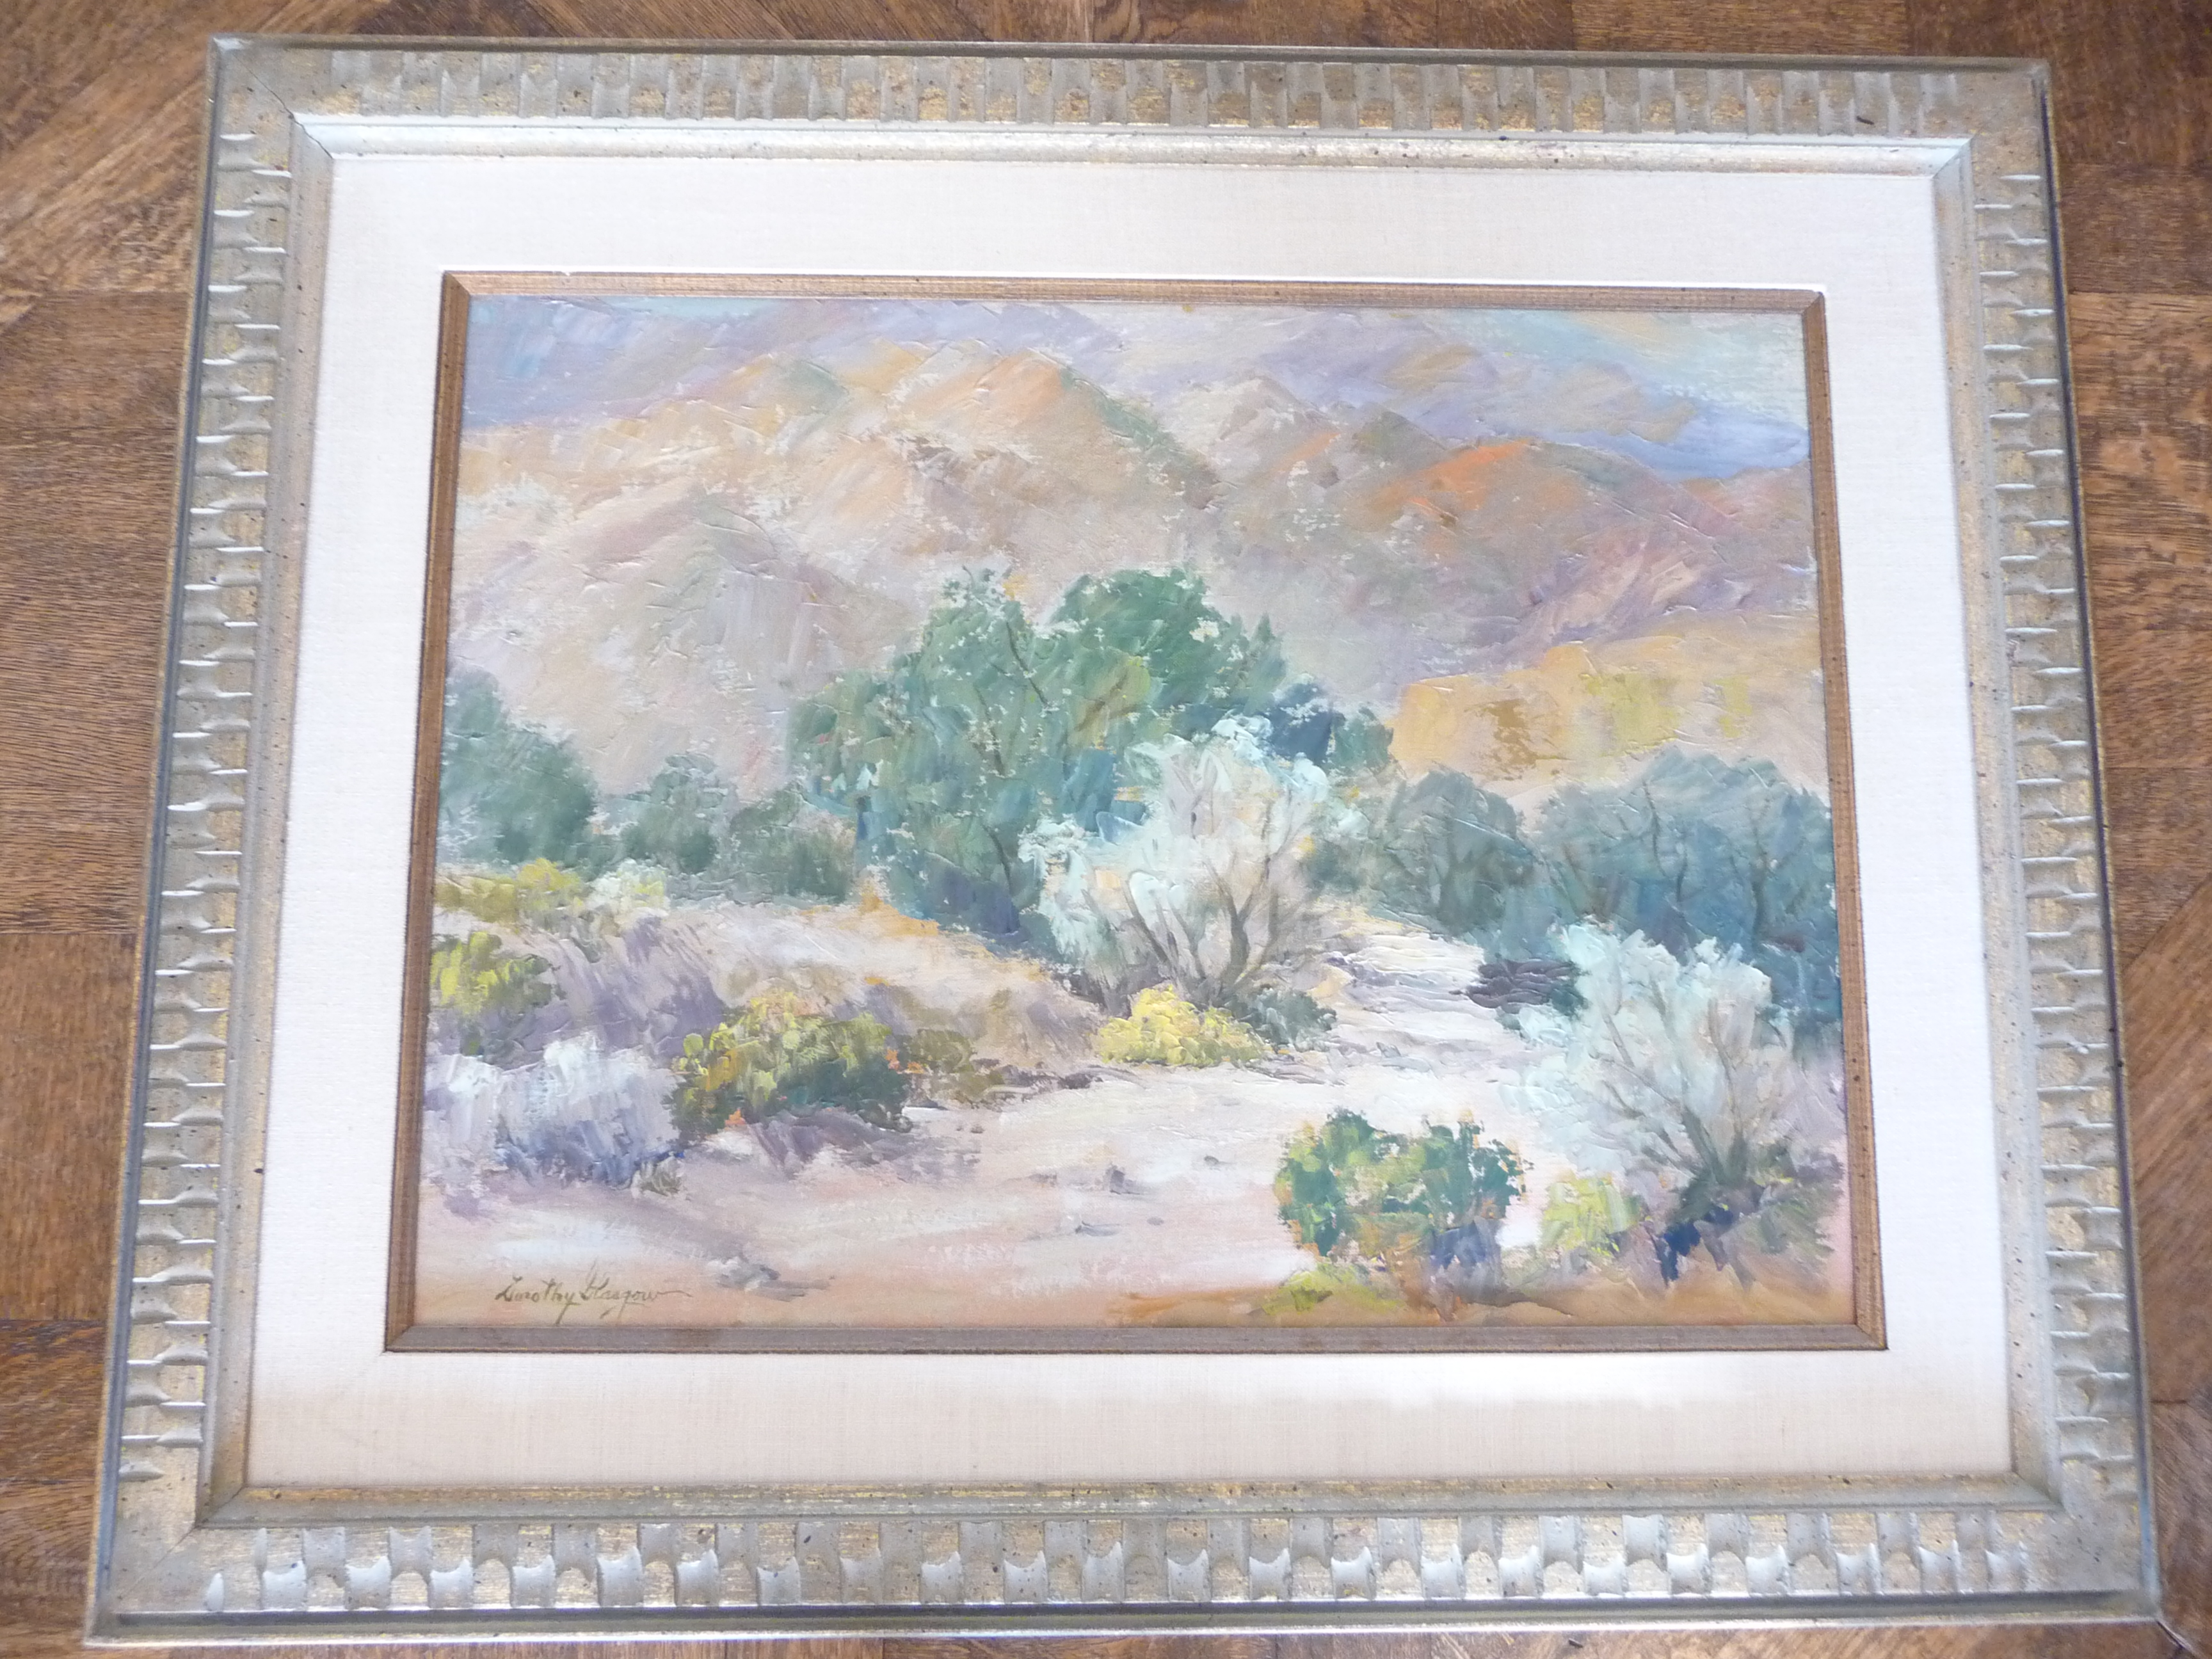 S., Paintings by Glasgow, Palm Springs, California What can you tell ...